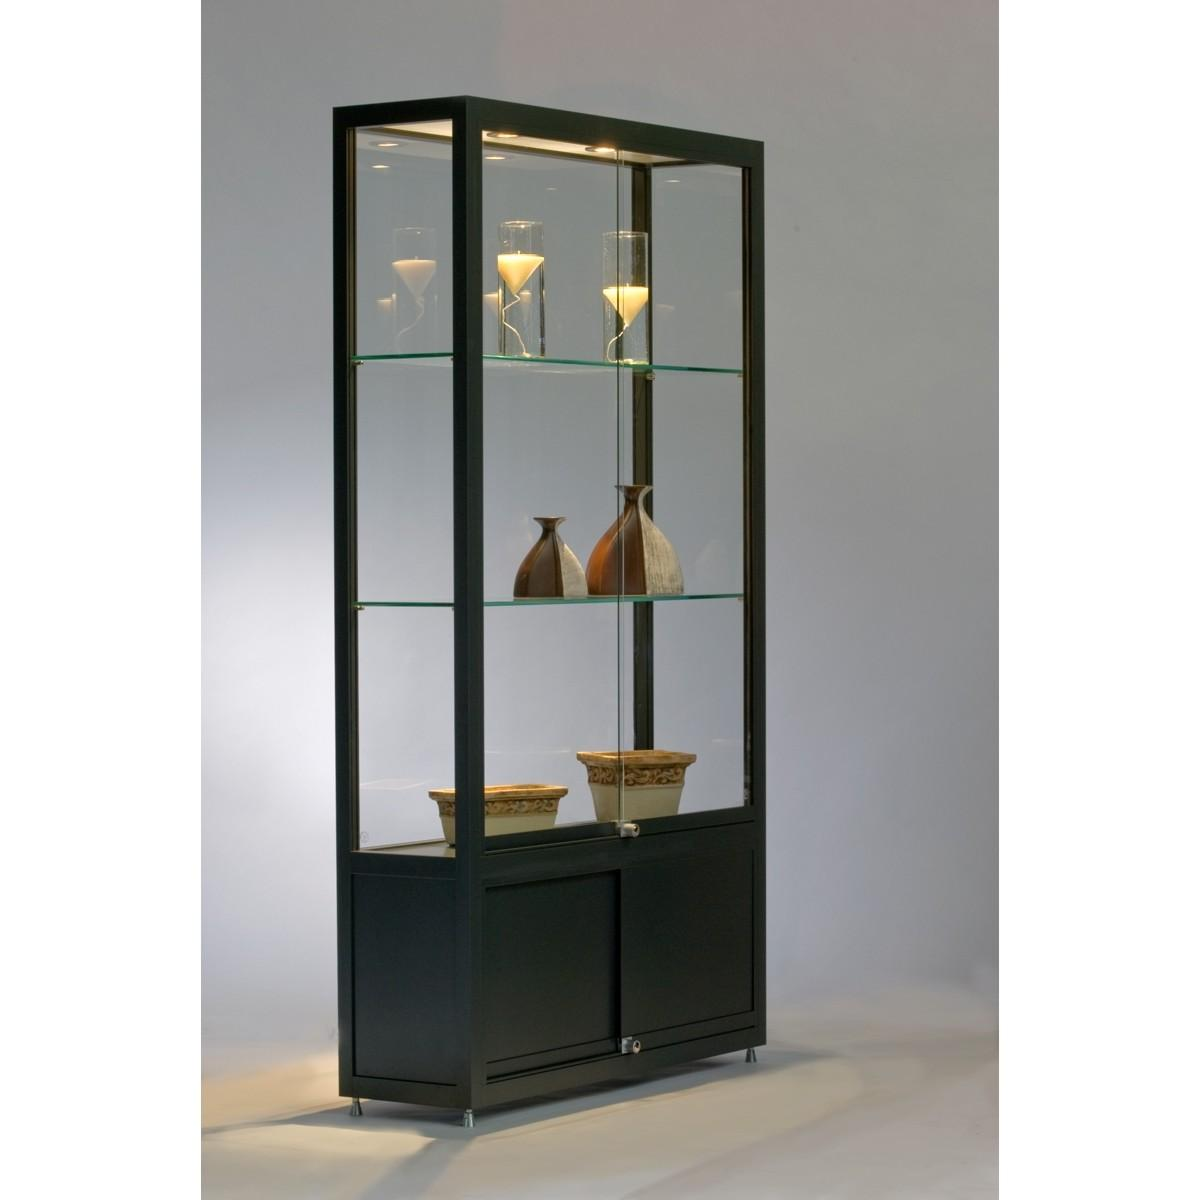 standvitrine klassik 24 innenvitrine vitrine standvitrinen. Black Bedroom Furniture Sets. Home Design Ideas